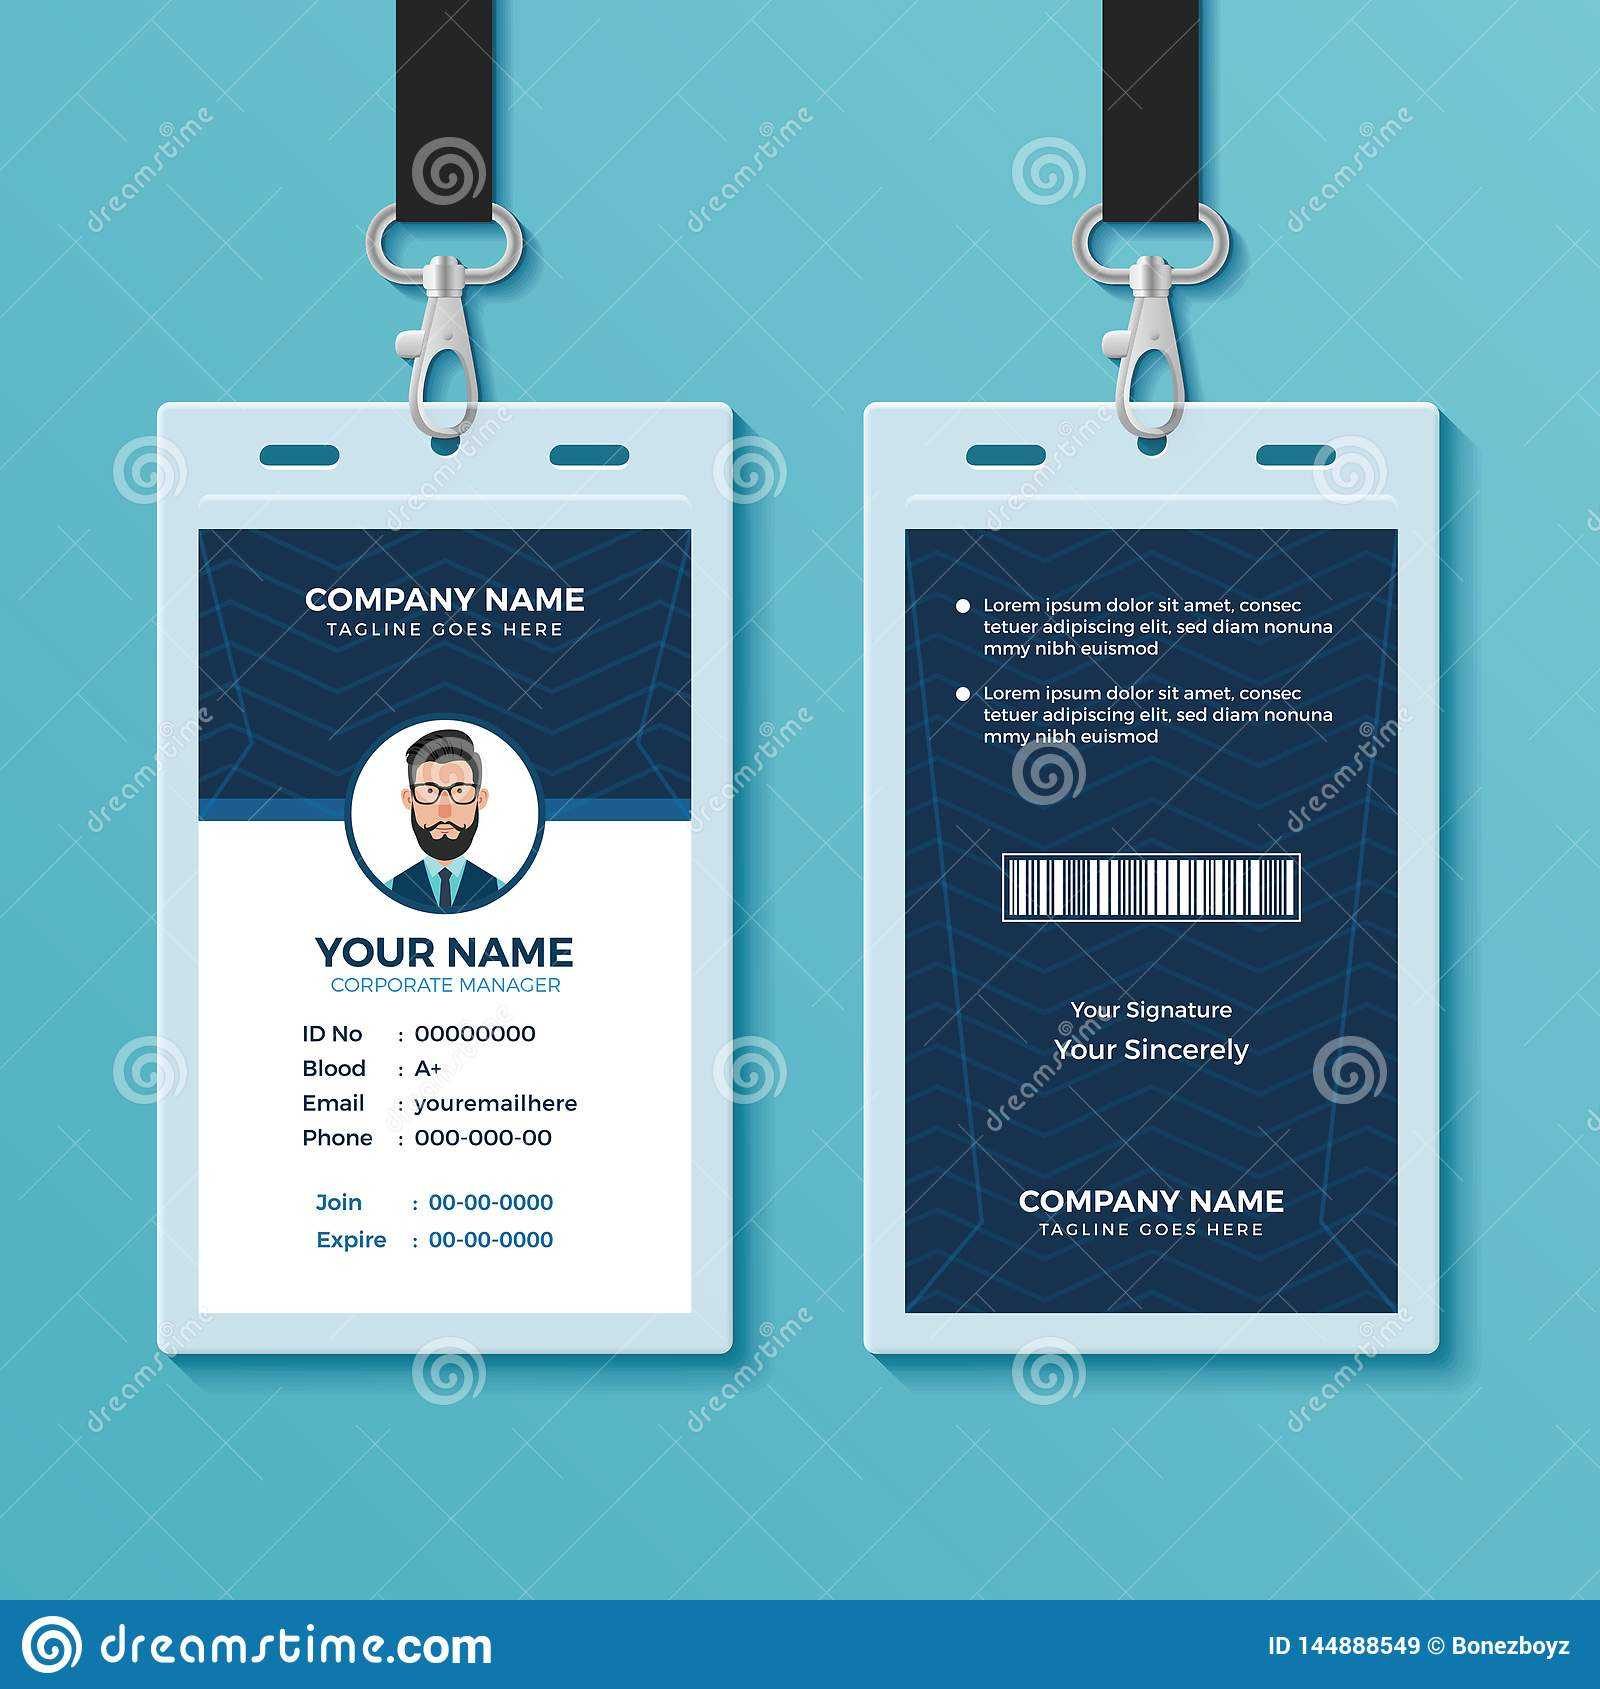 Modern And Clean Id Card Design Template Stock Vector Intended For Conference Id Card Template